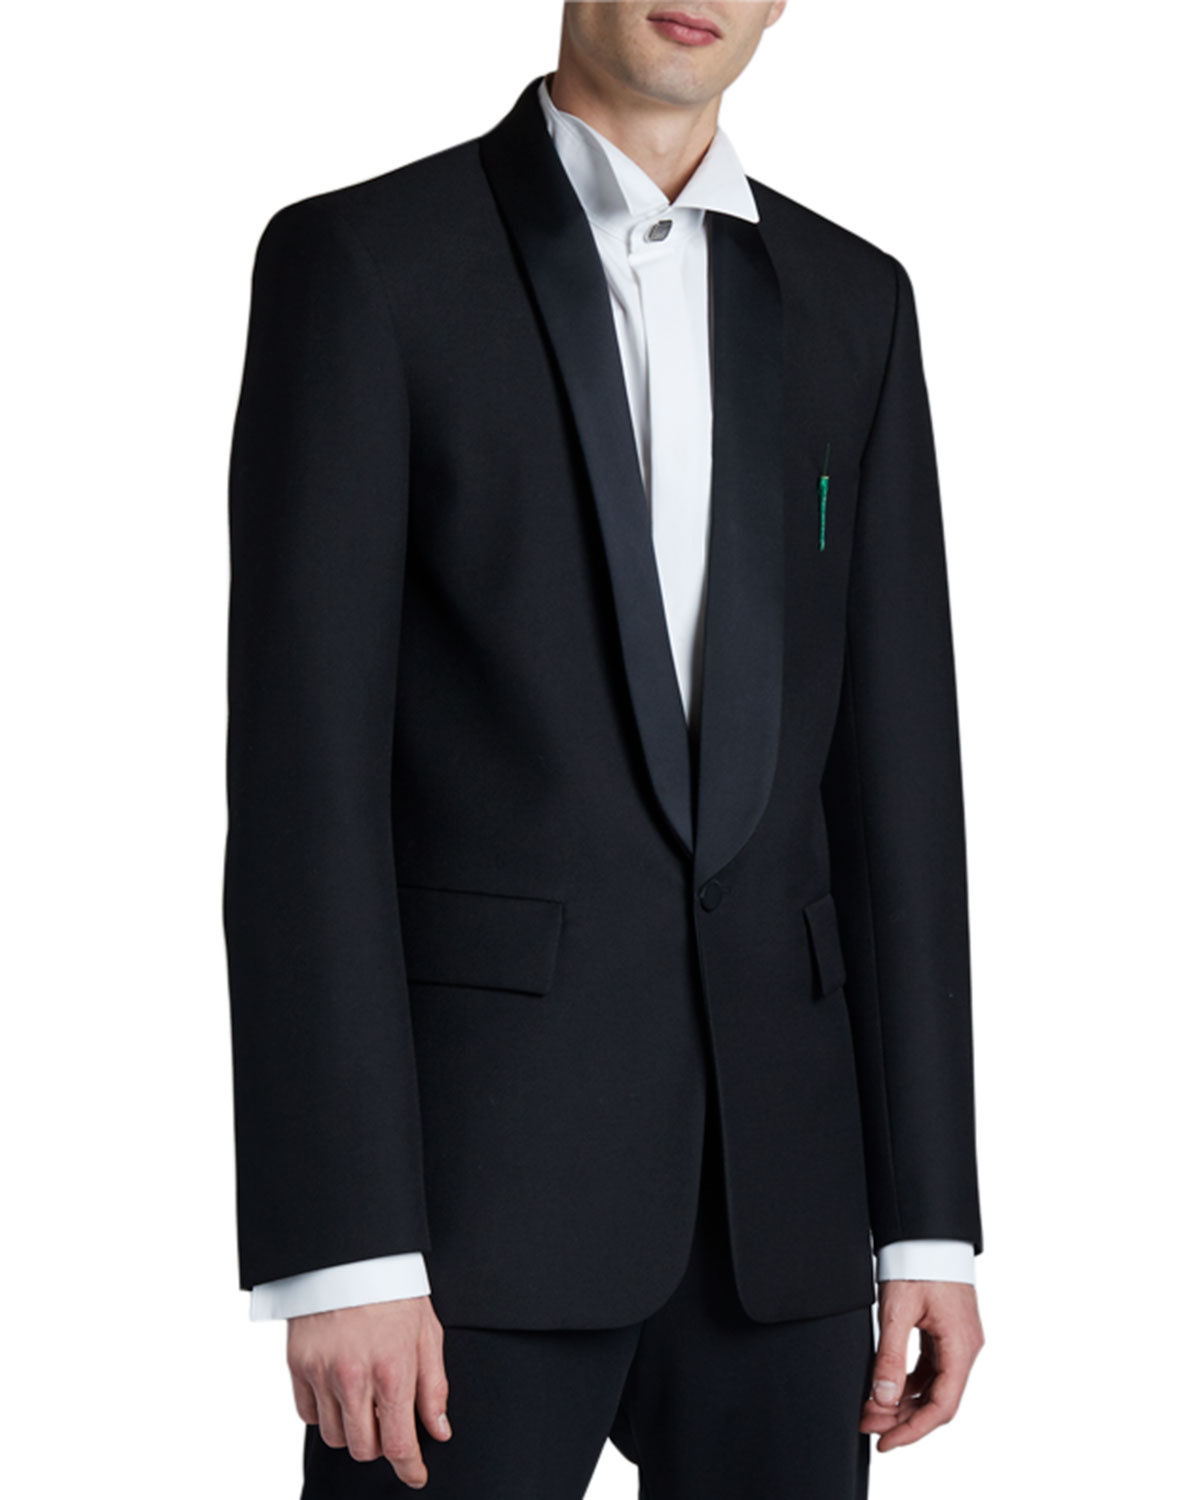 Balenciaga Downs MEN'S SEAMLESS TUXEDO JACKET